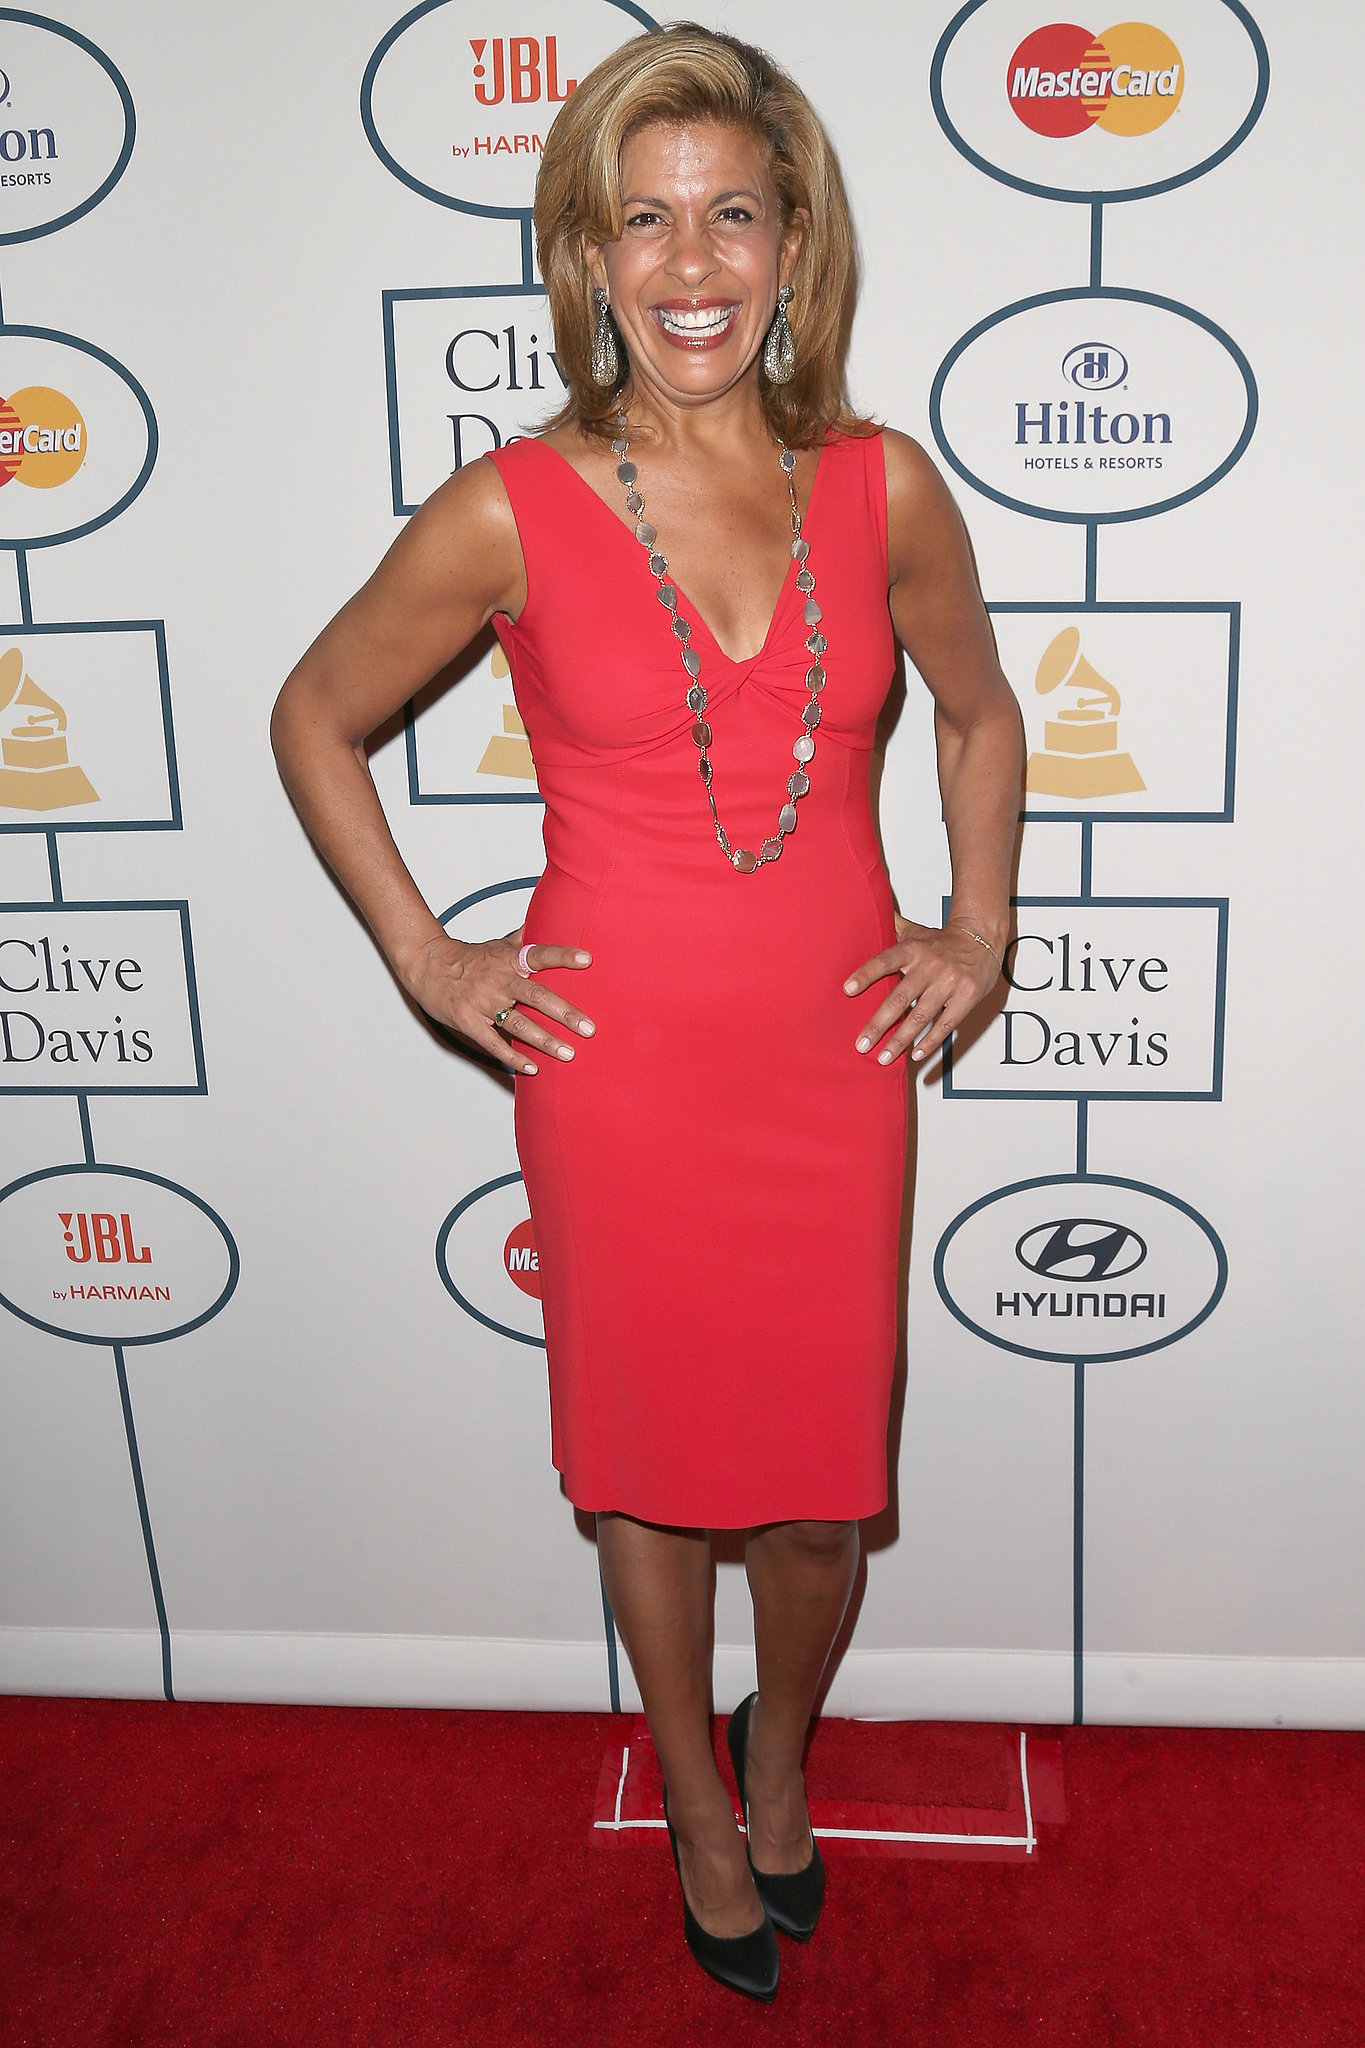 Today anchor Hoda Kotb got in on the red carpet fun.